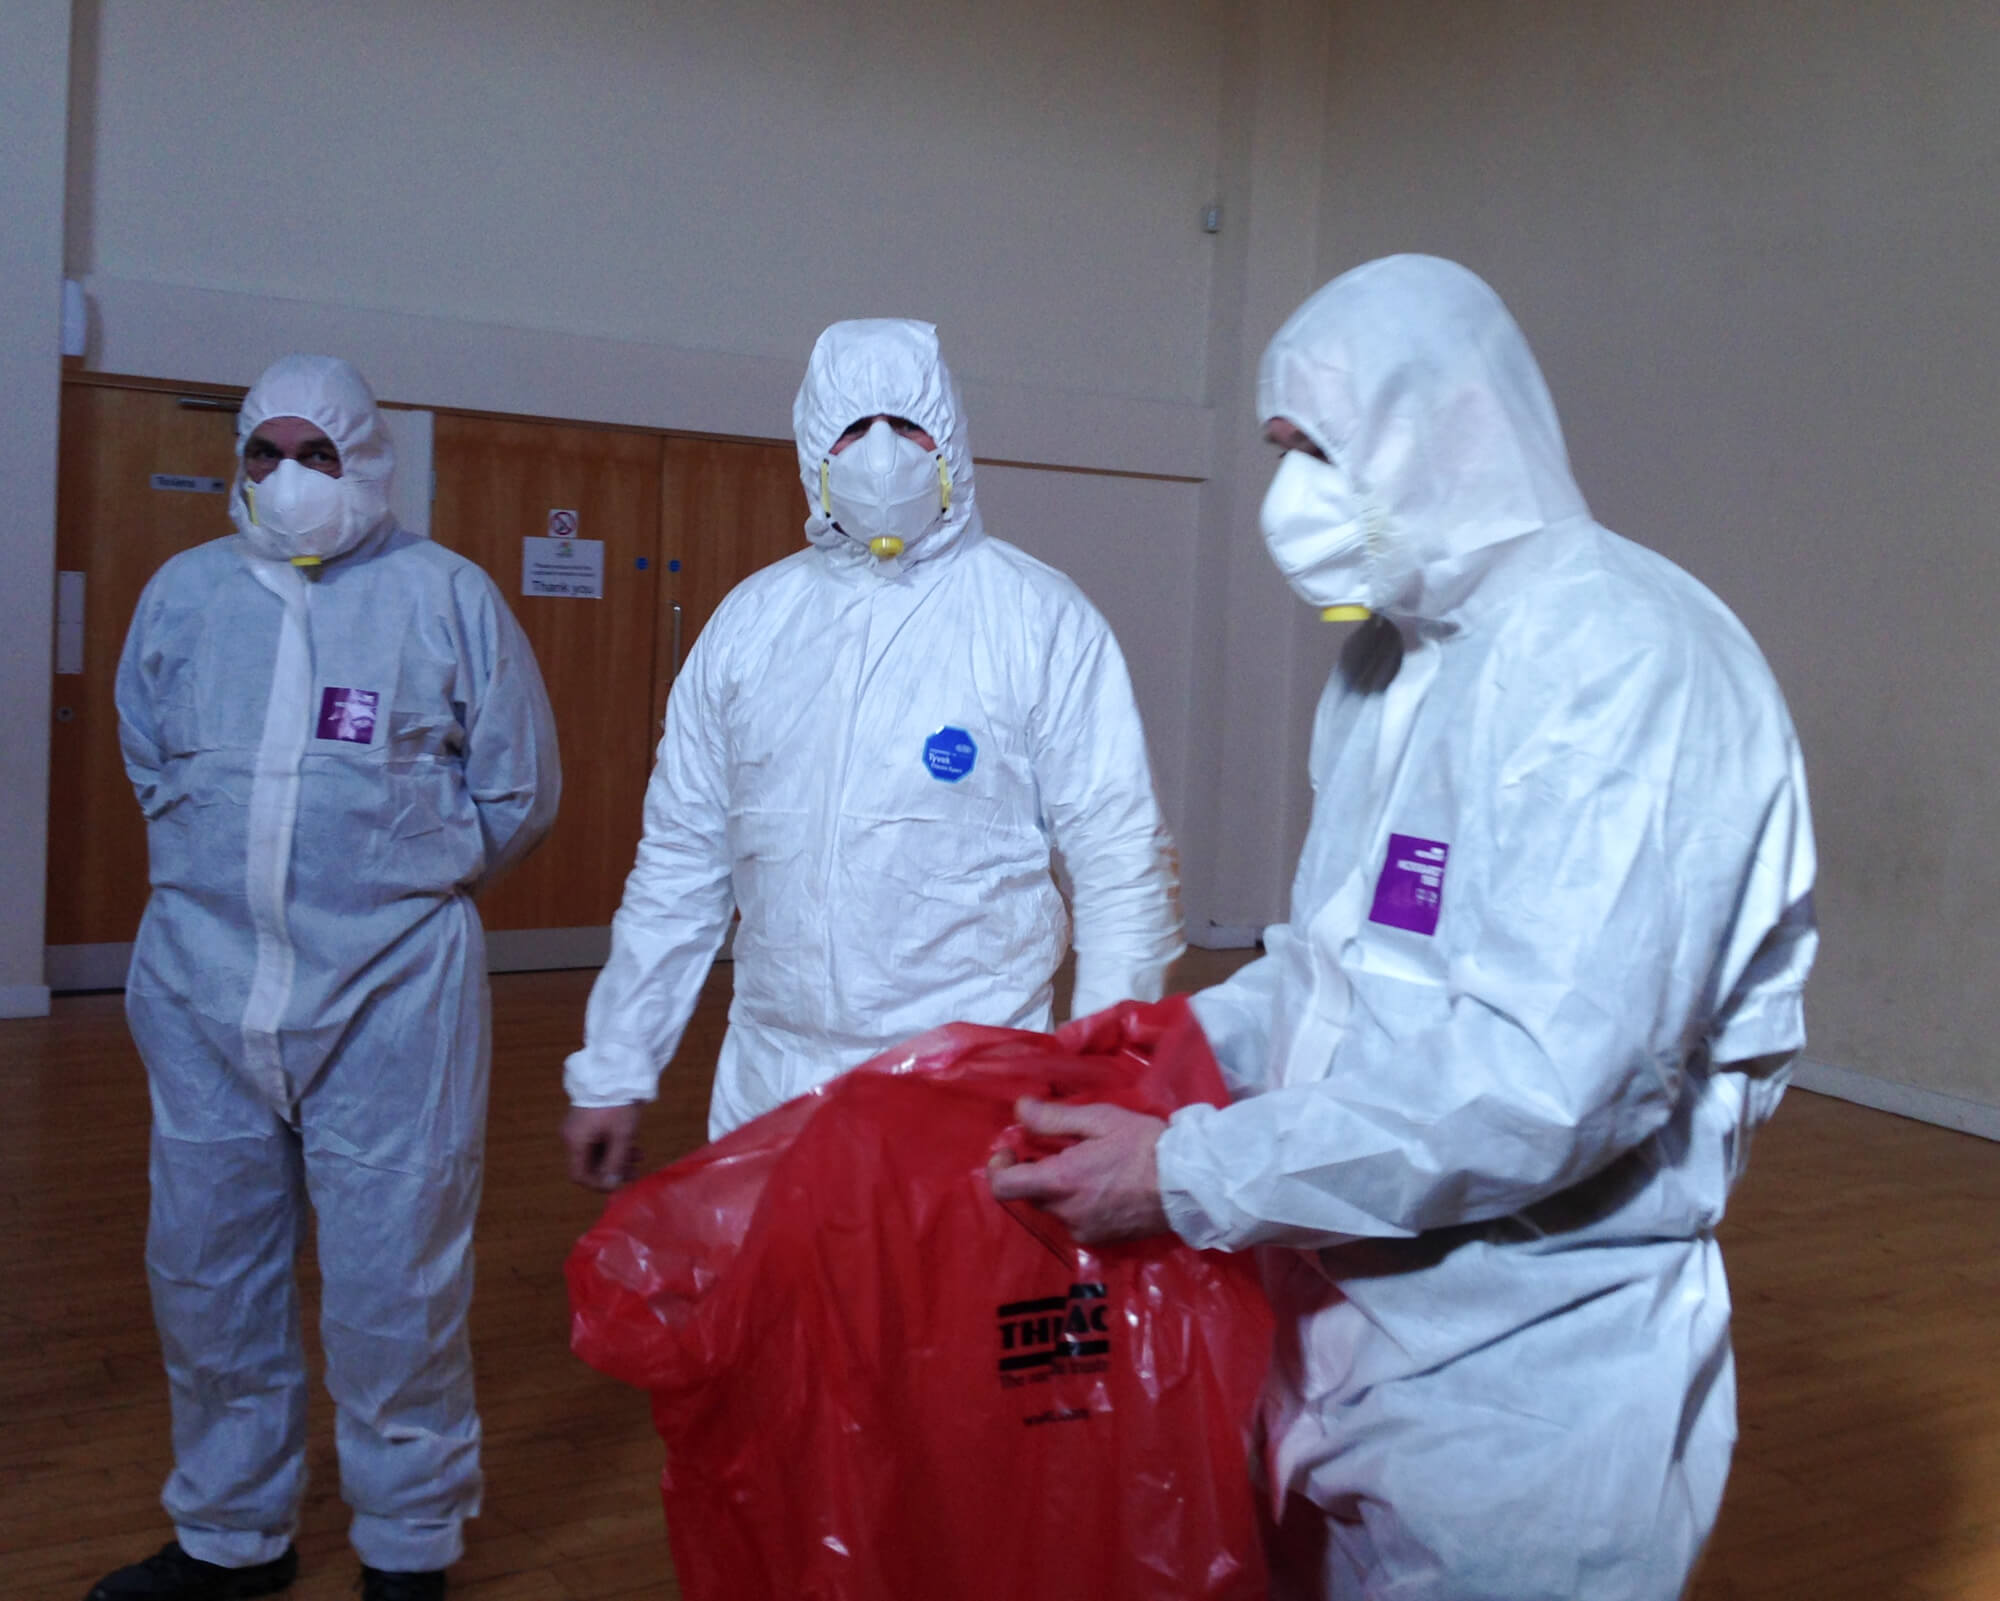 Training participants with white protection suits